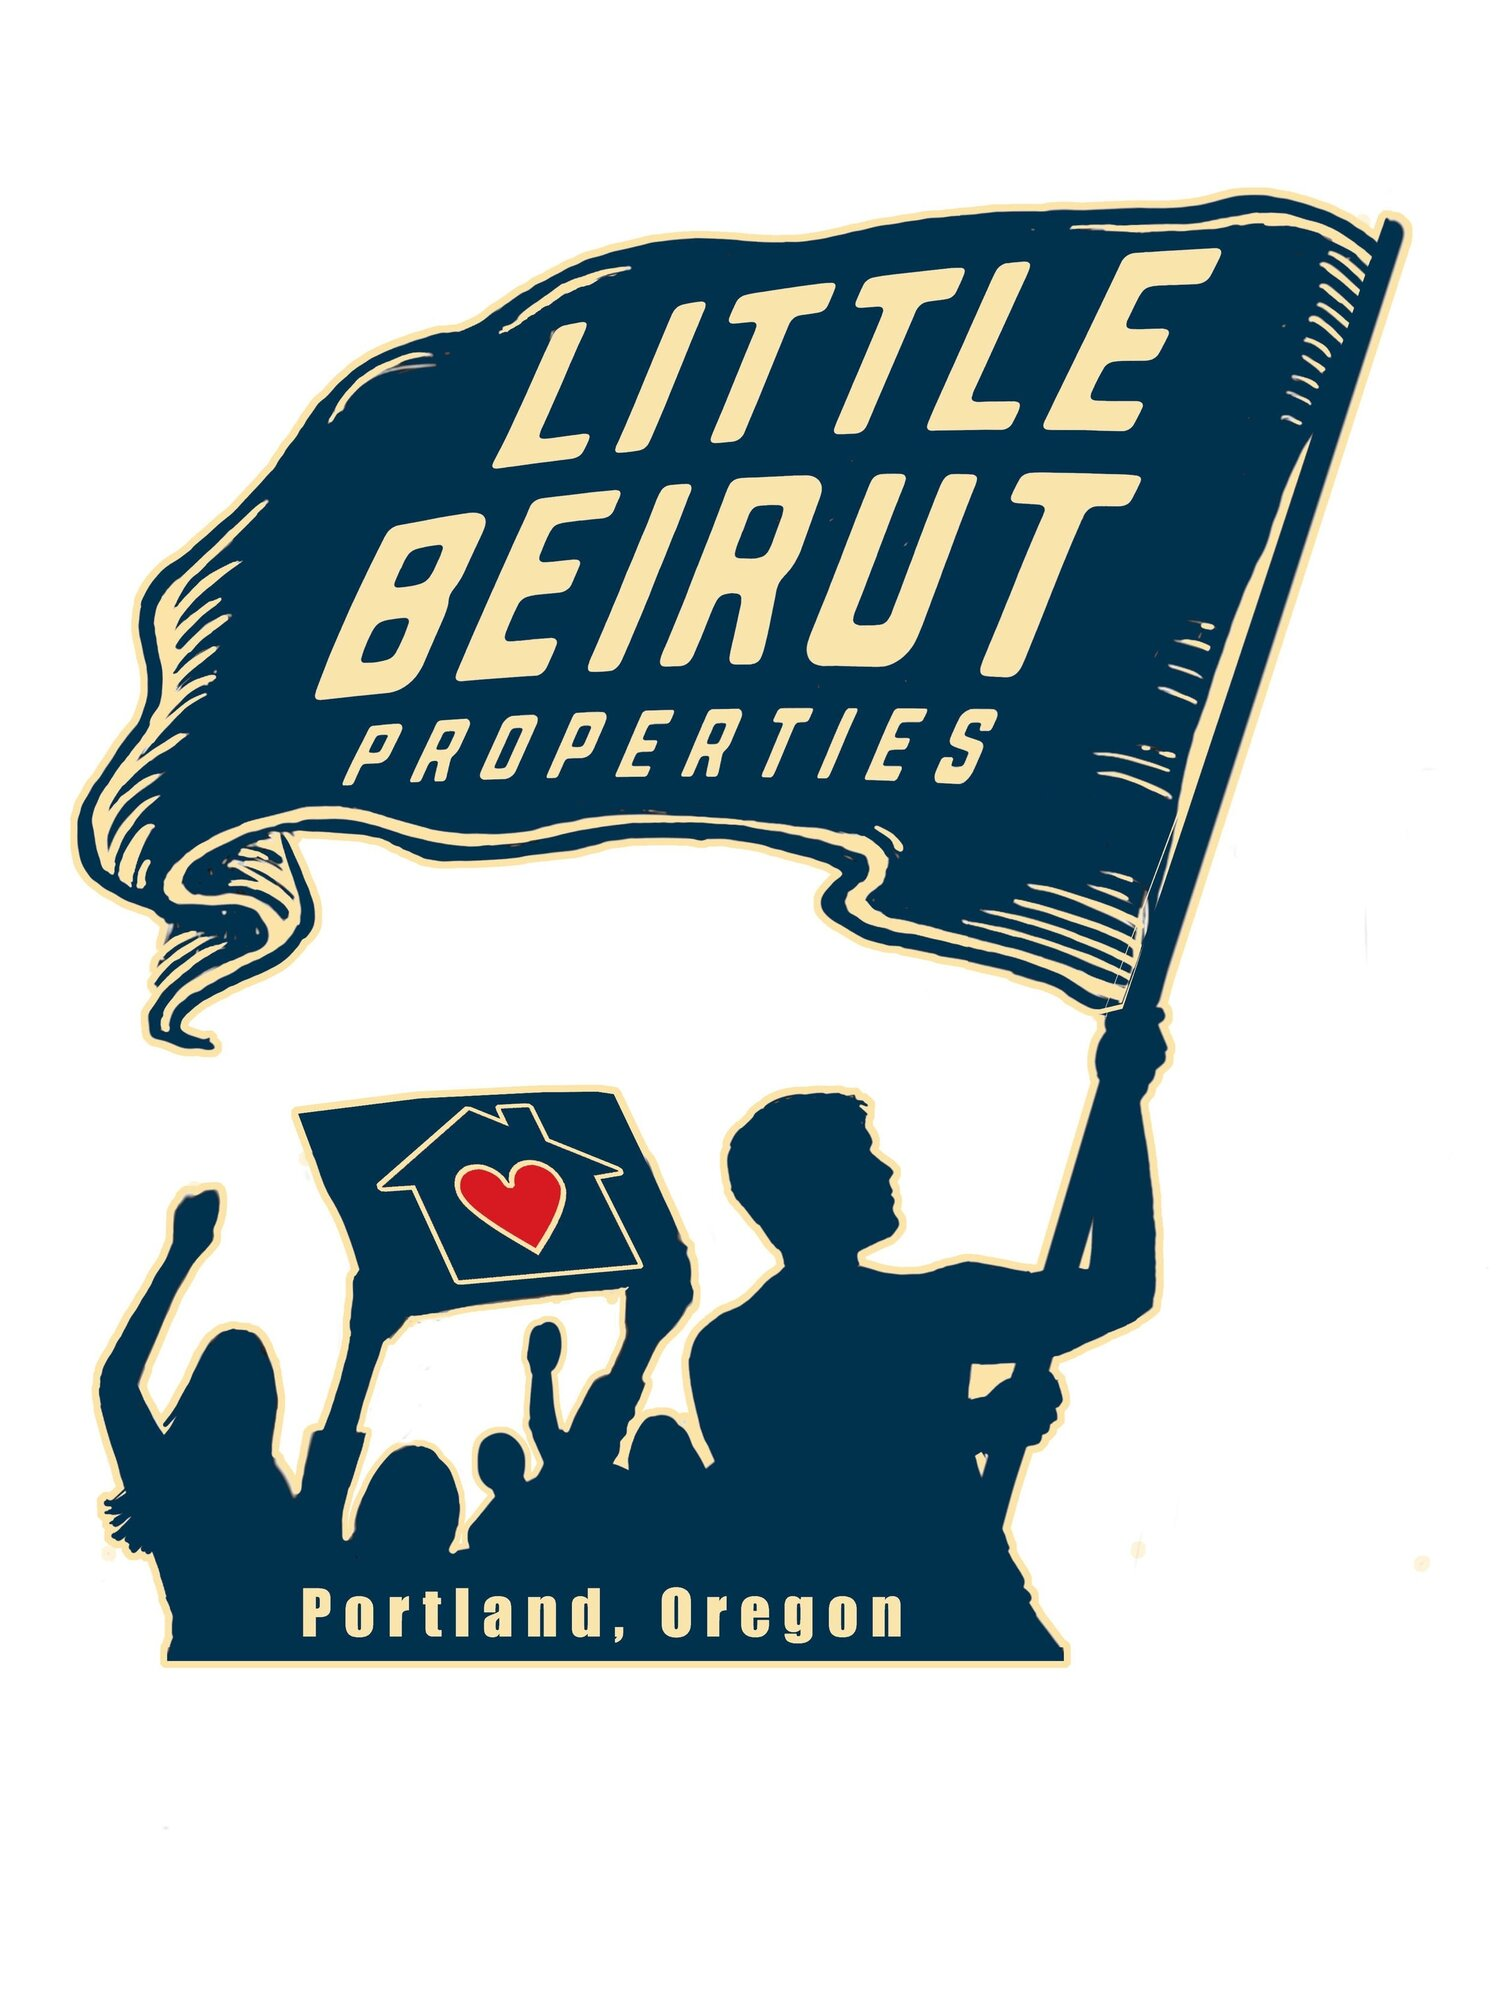 Little Beirut Properties